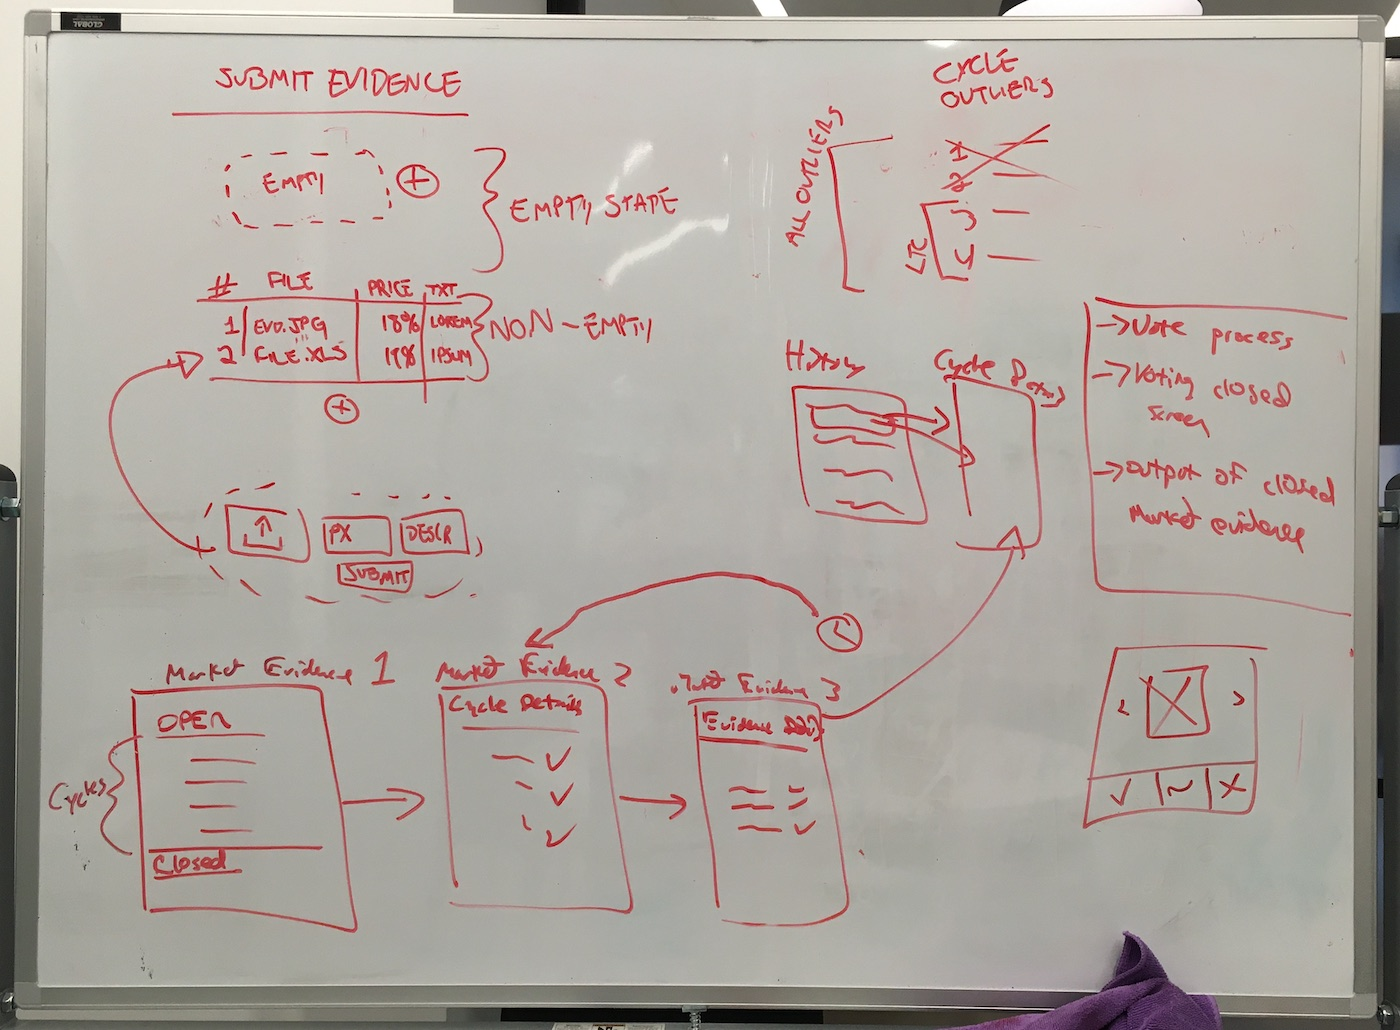 A photo of a whiteboard with early UX process drawing